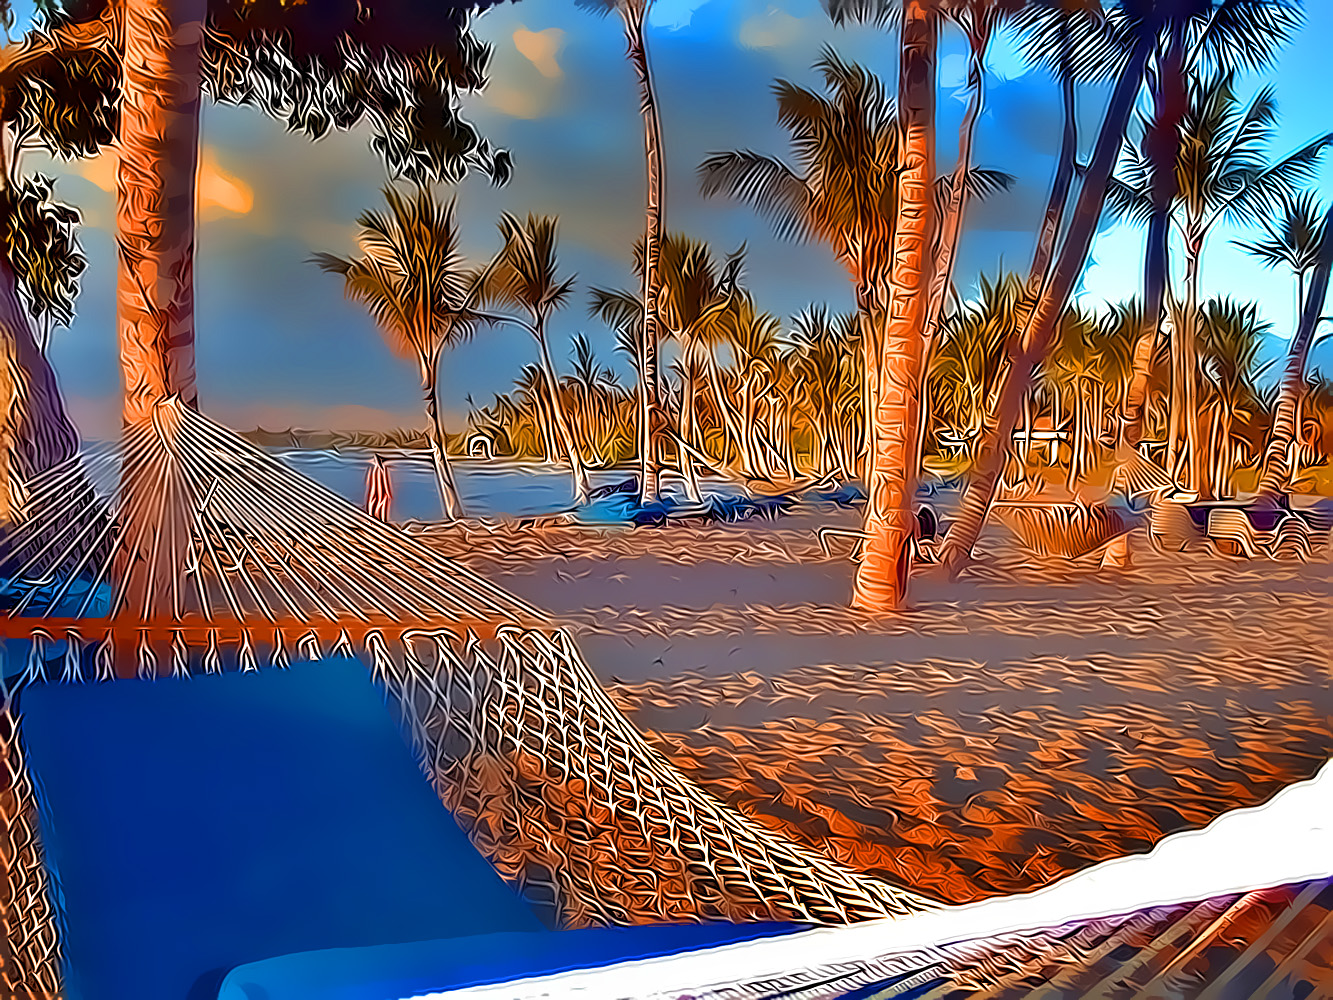 Beach Hammocks, palms, resort, tropical, warm, HQ Photo